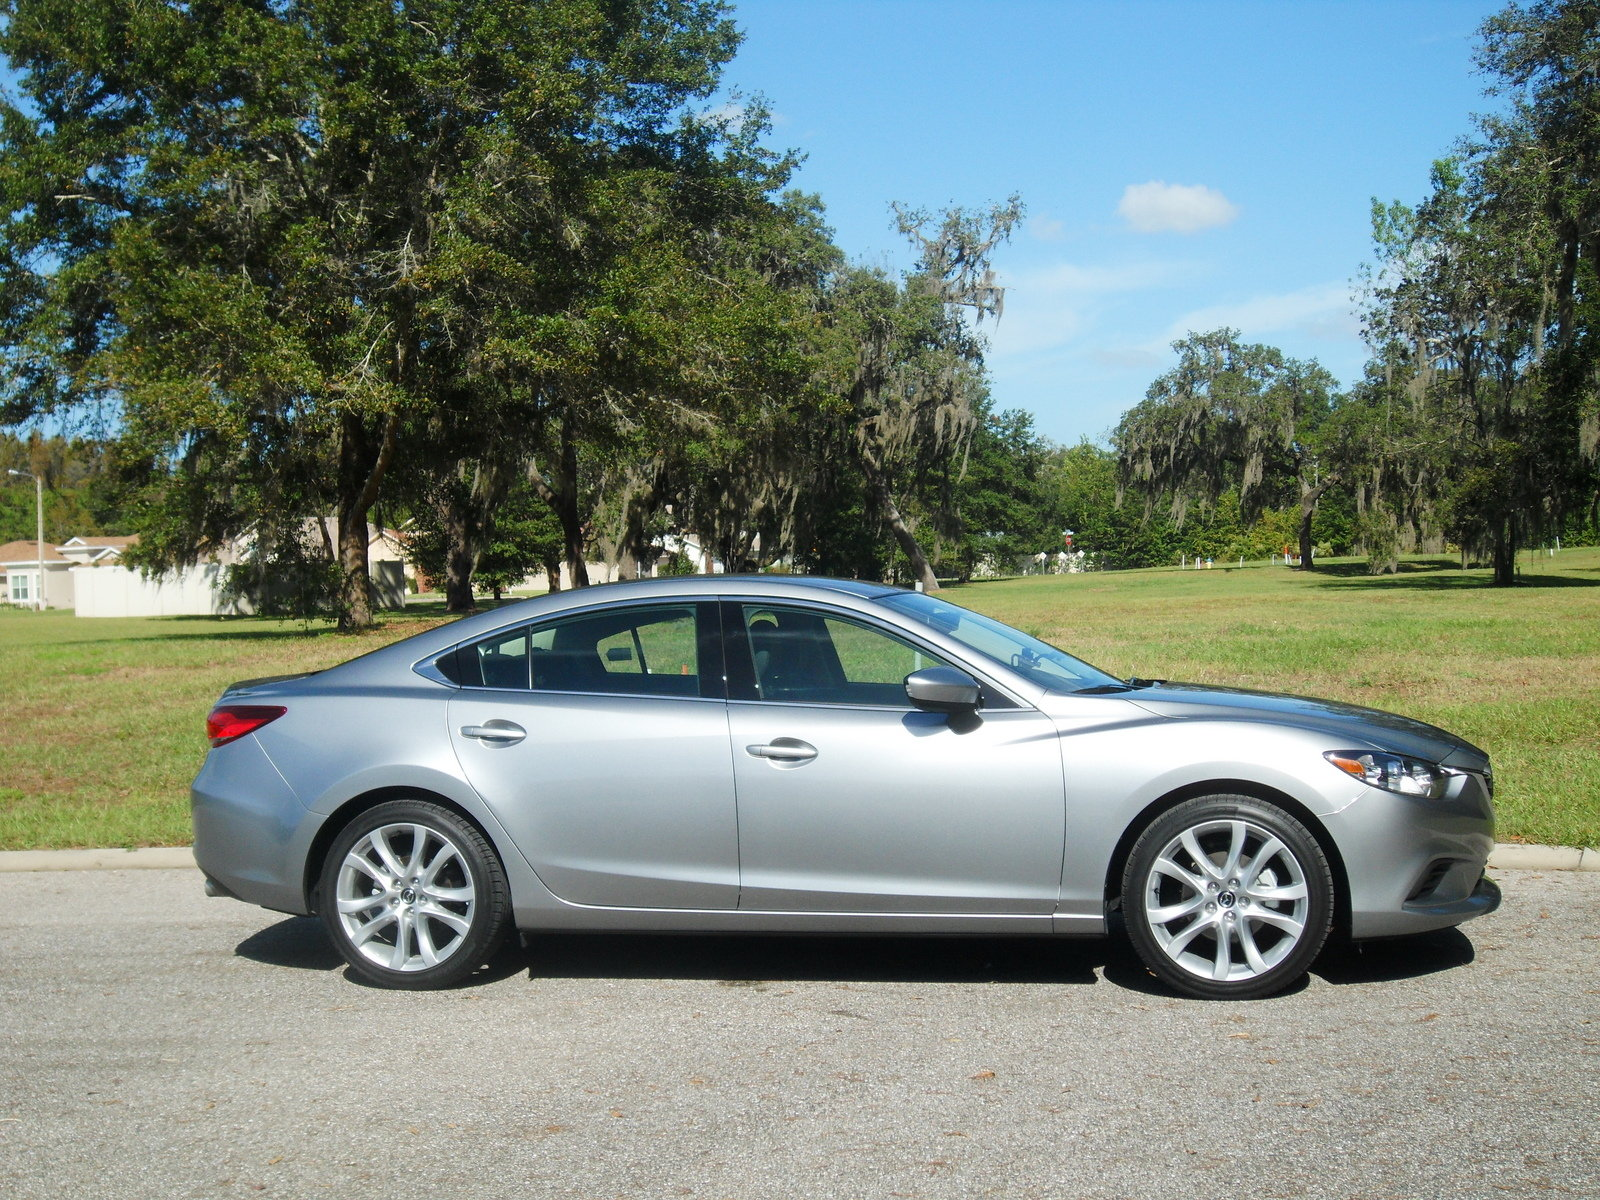 2014 mazda6 i touring driven picture 531414 car review top speed. Black Bedroom Furniture Sets. Home Design Ideas